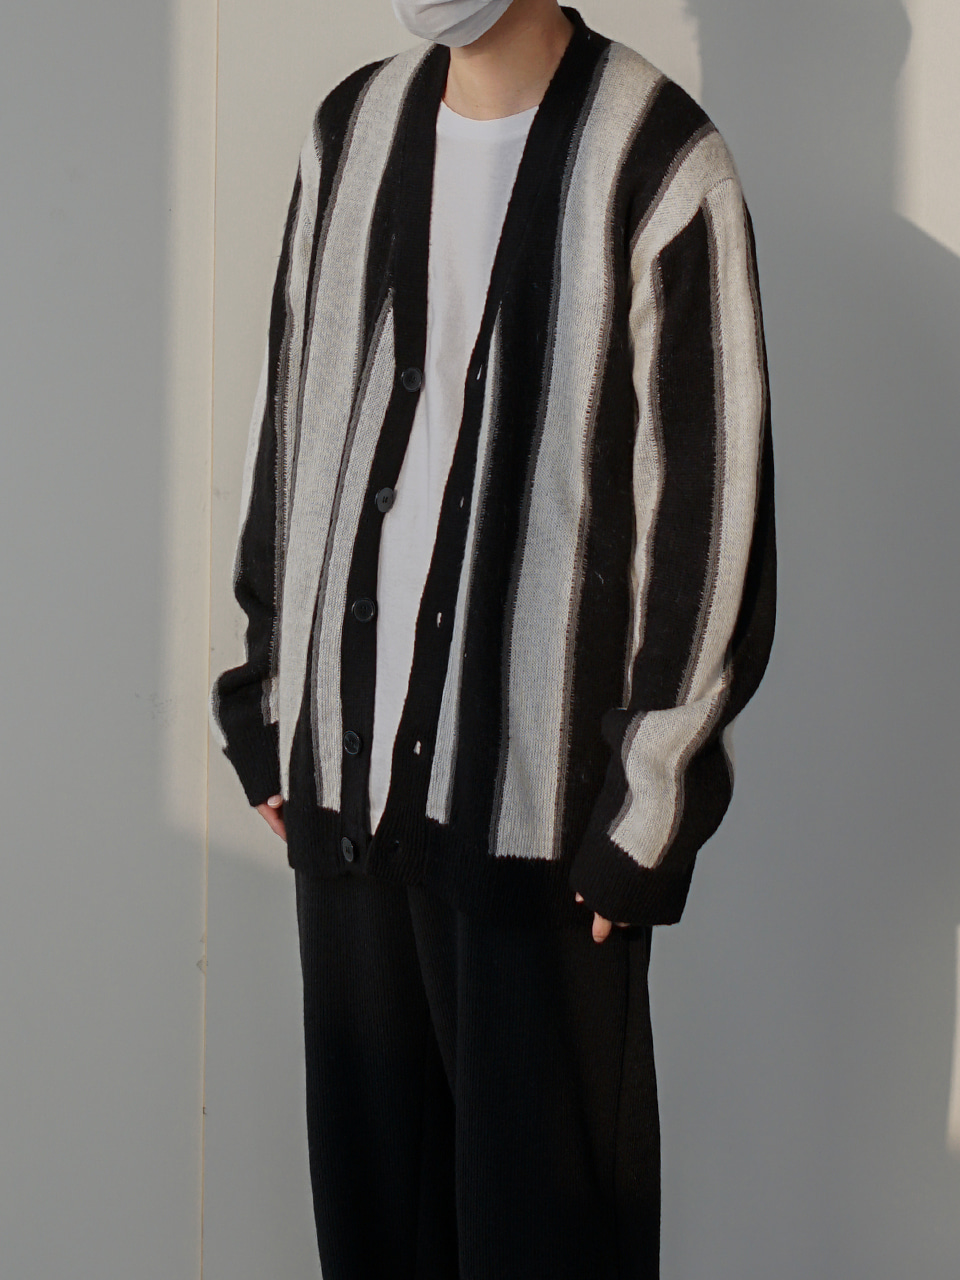 John Stripe Knit Cardigan (3color)